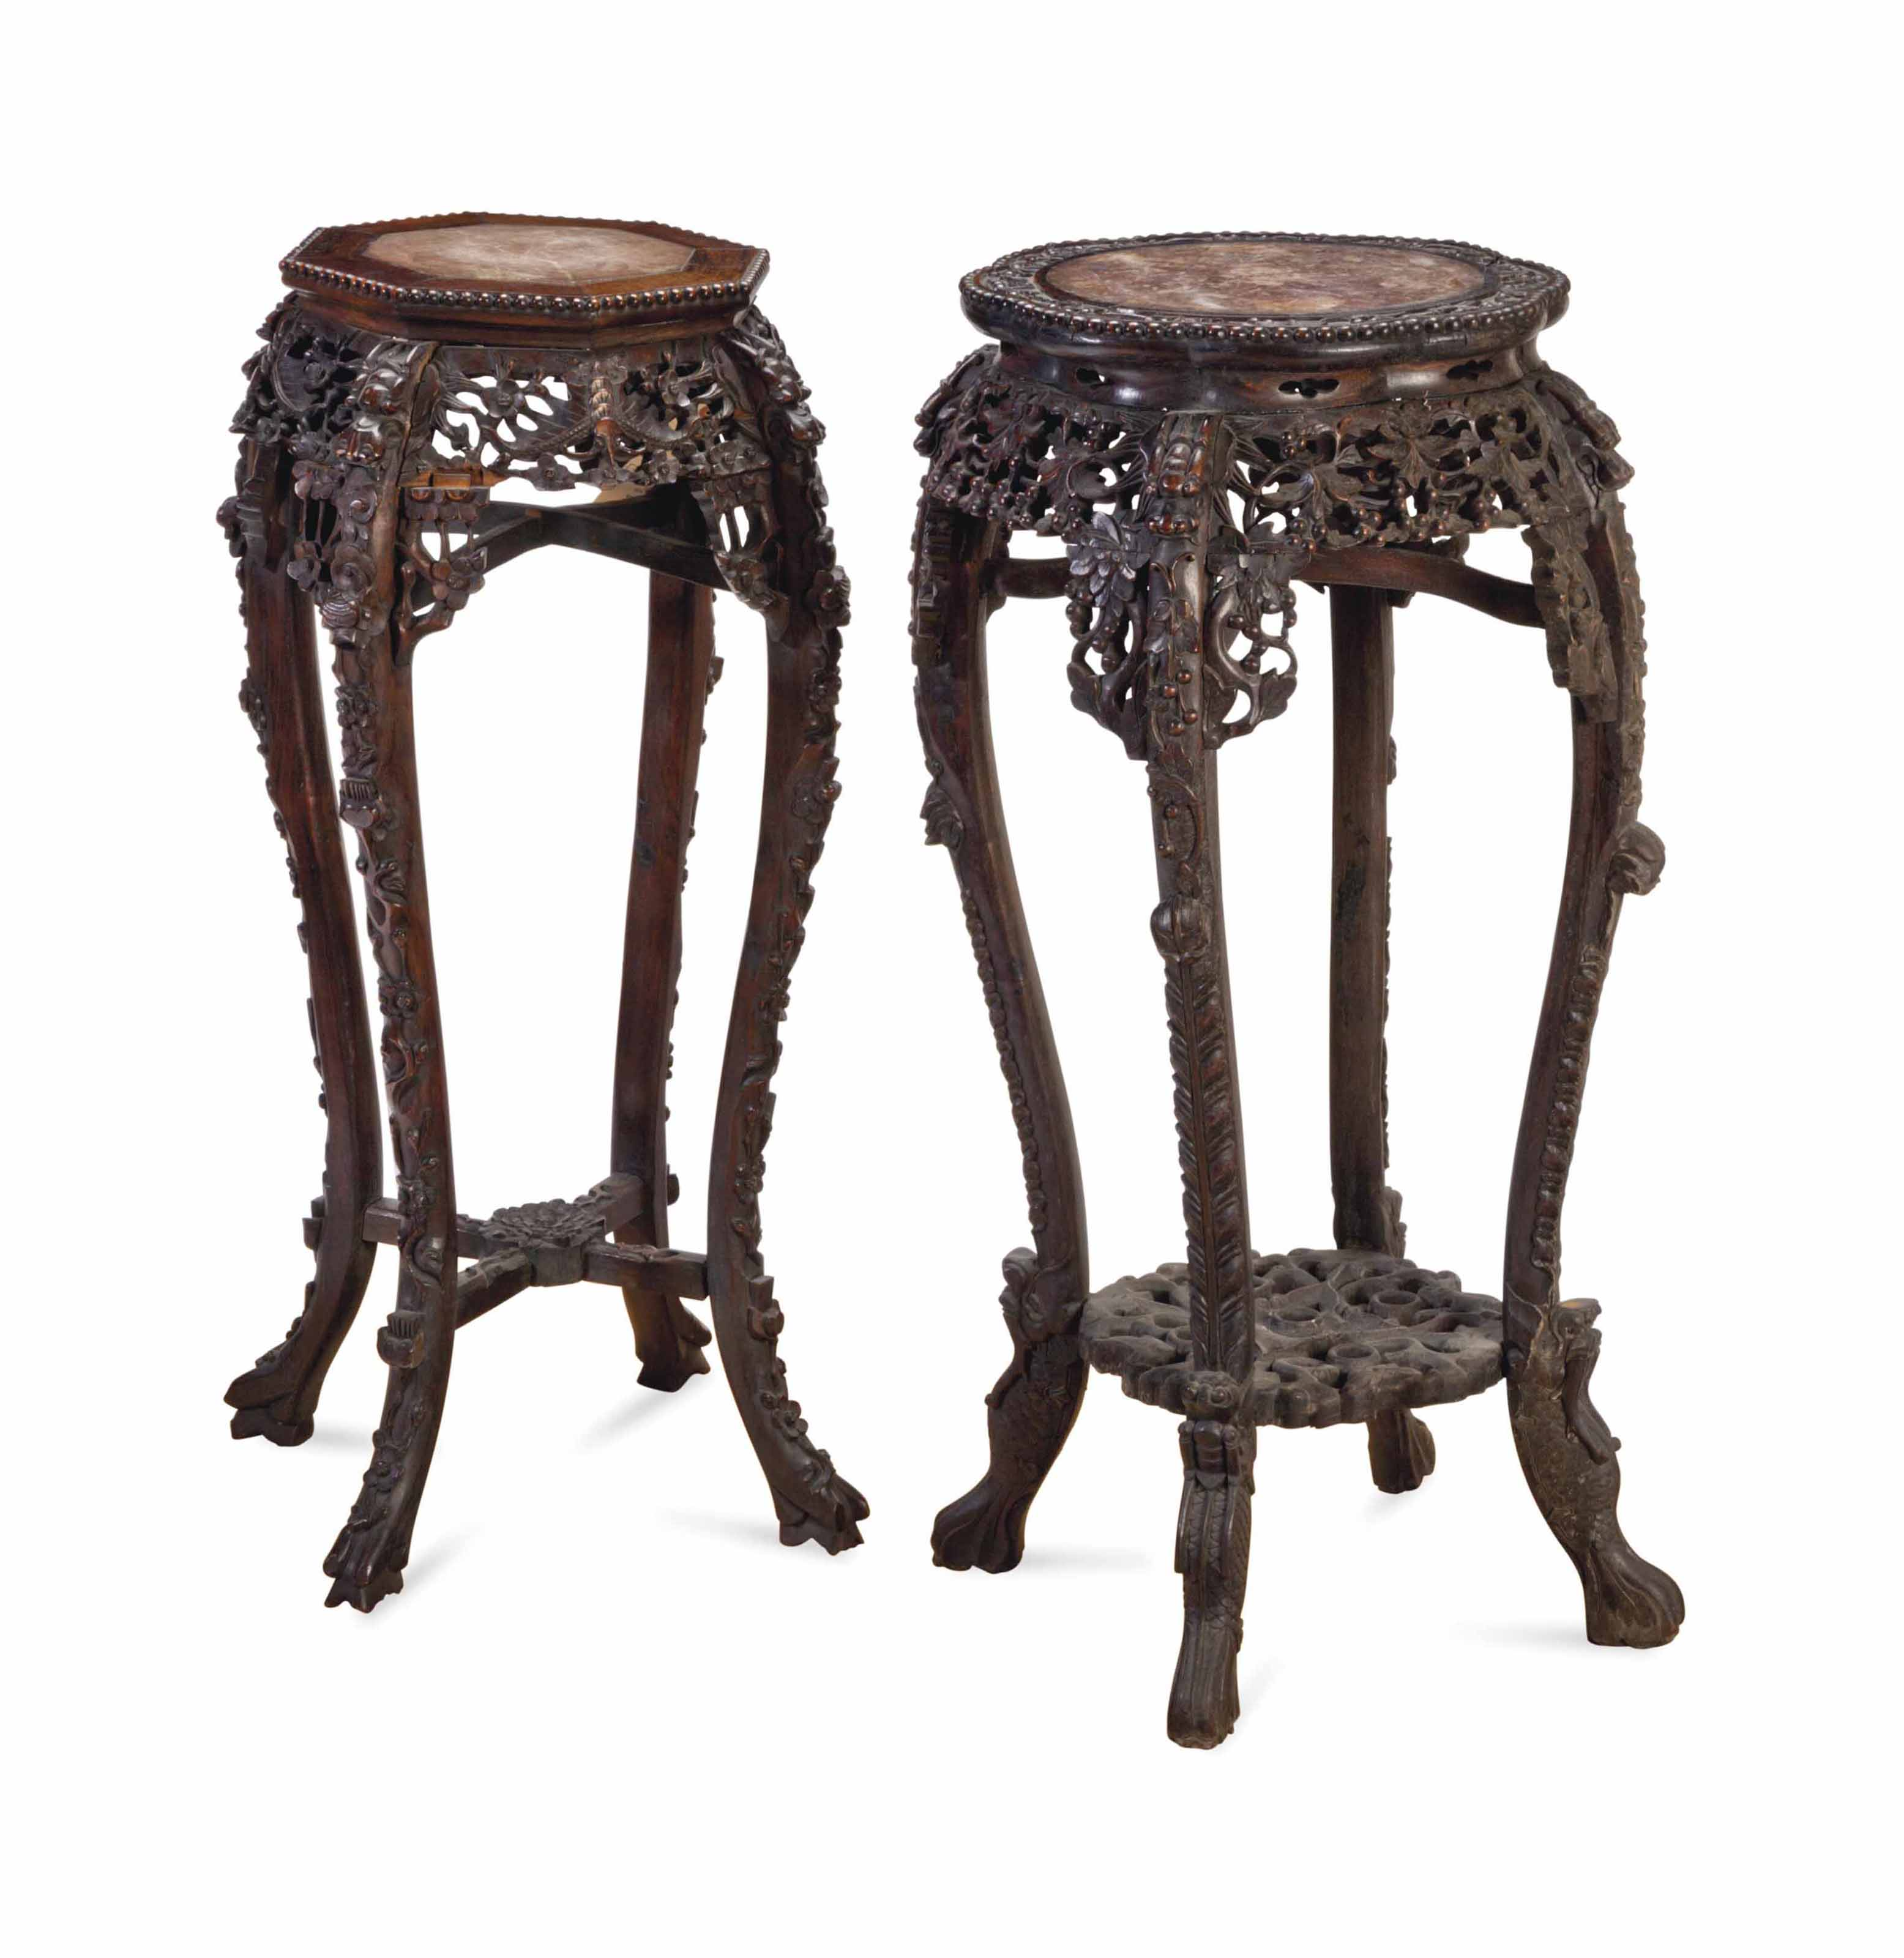 TWO SIMILAR CHINESE MARBLE-INSET HARDWOOD STANDS,